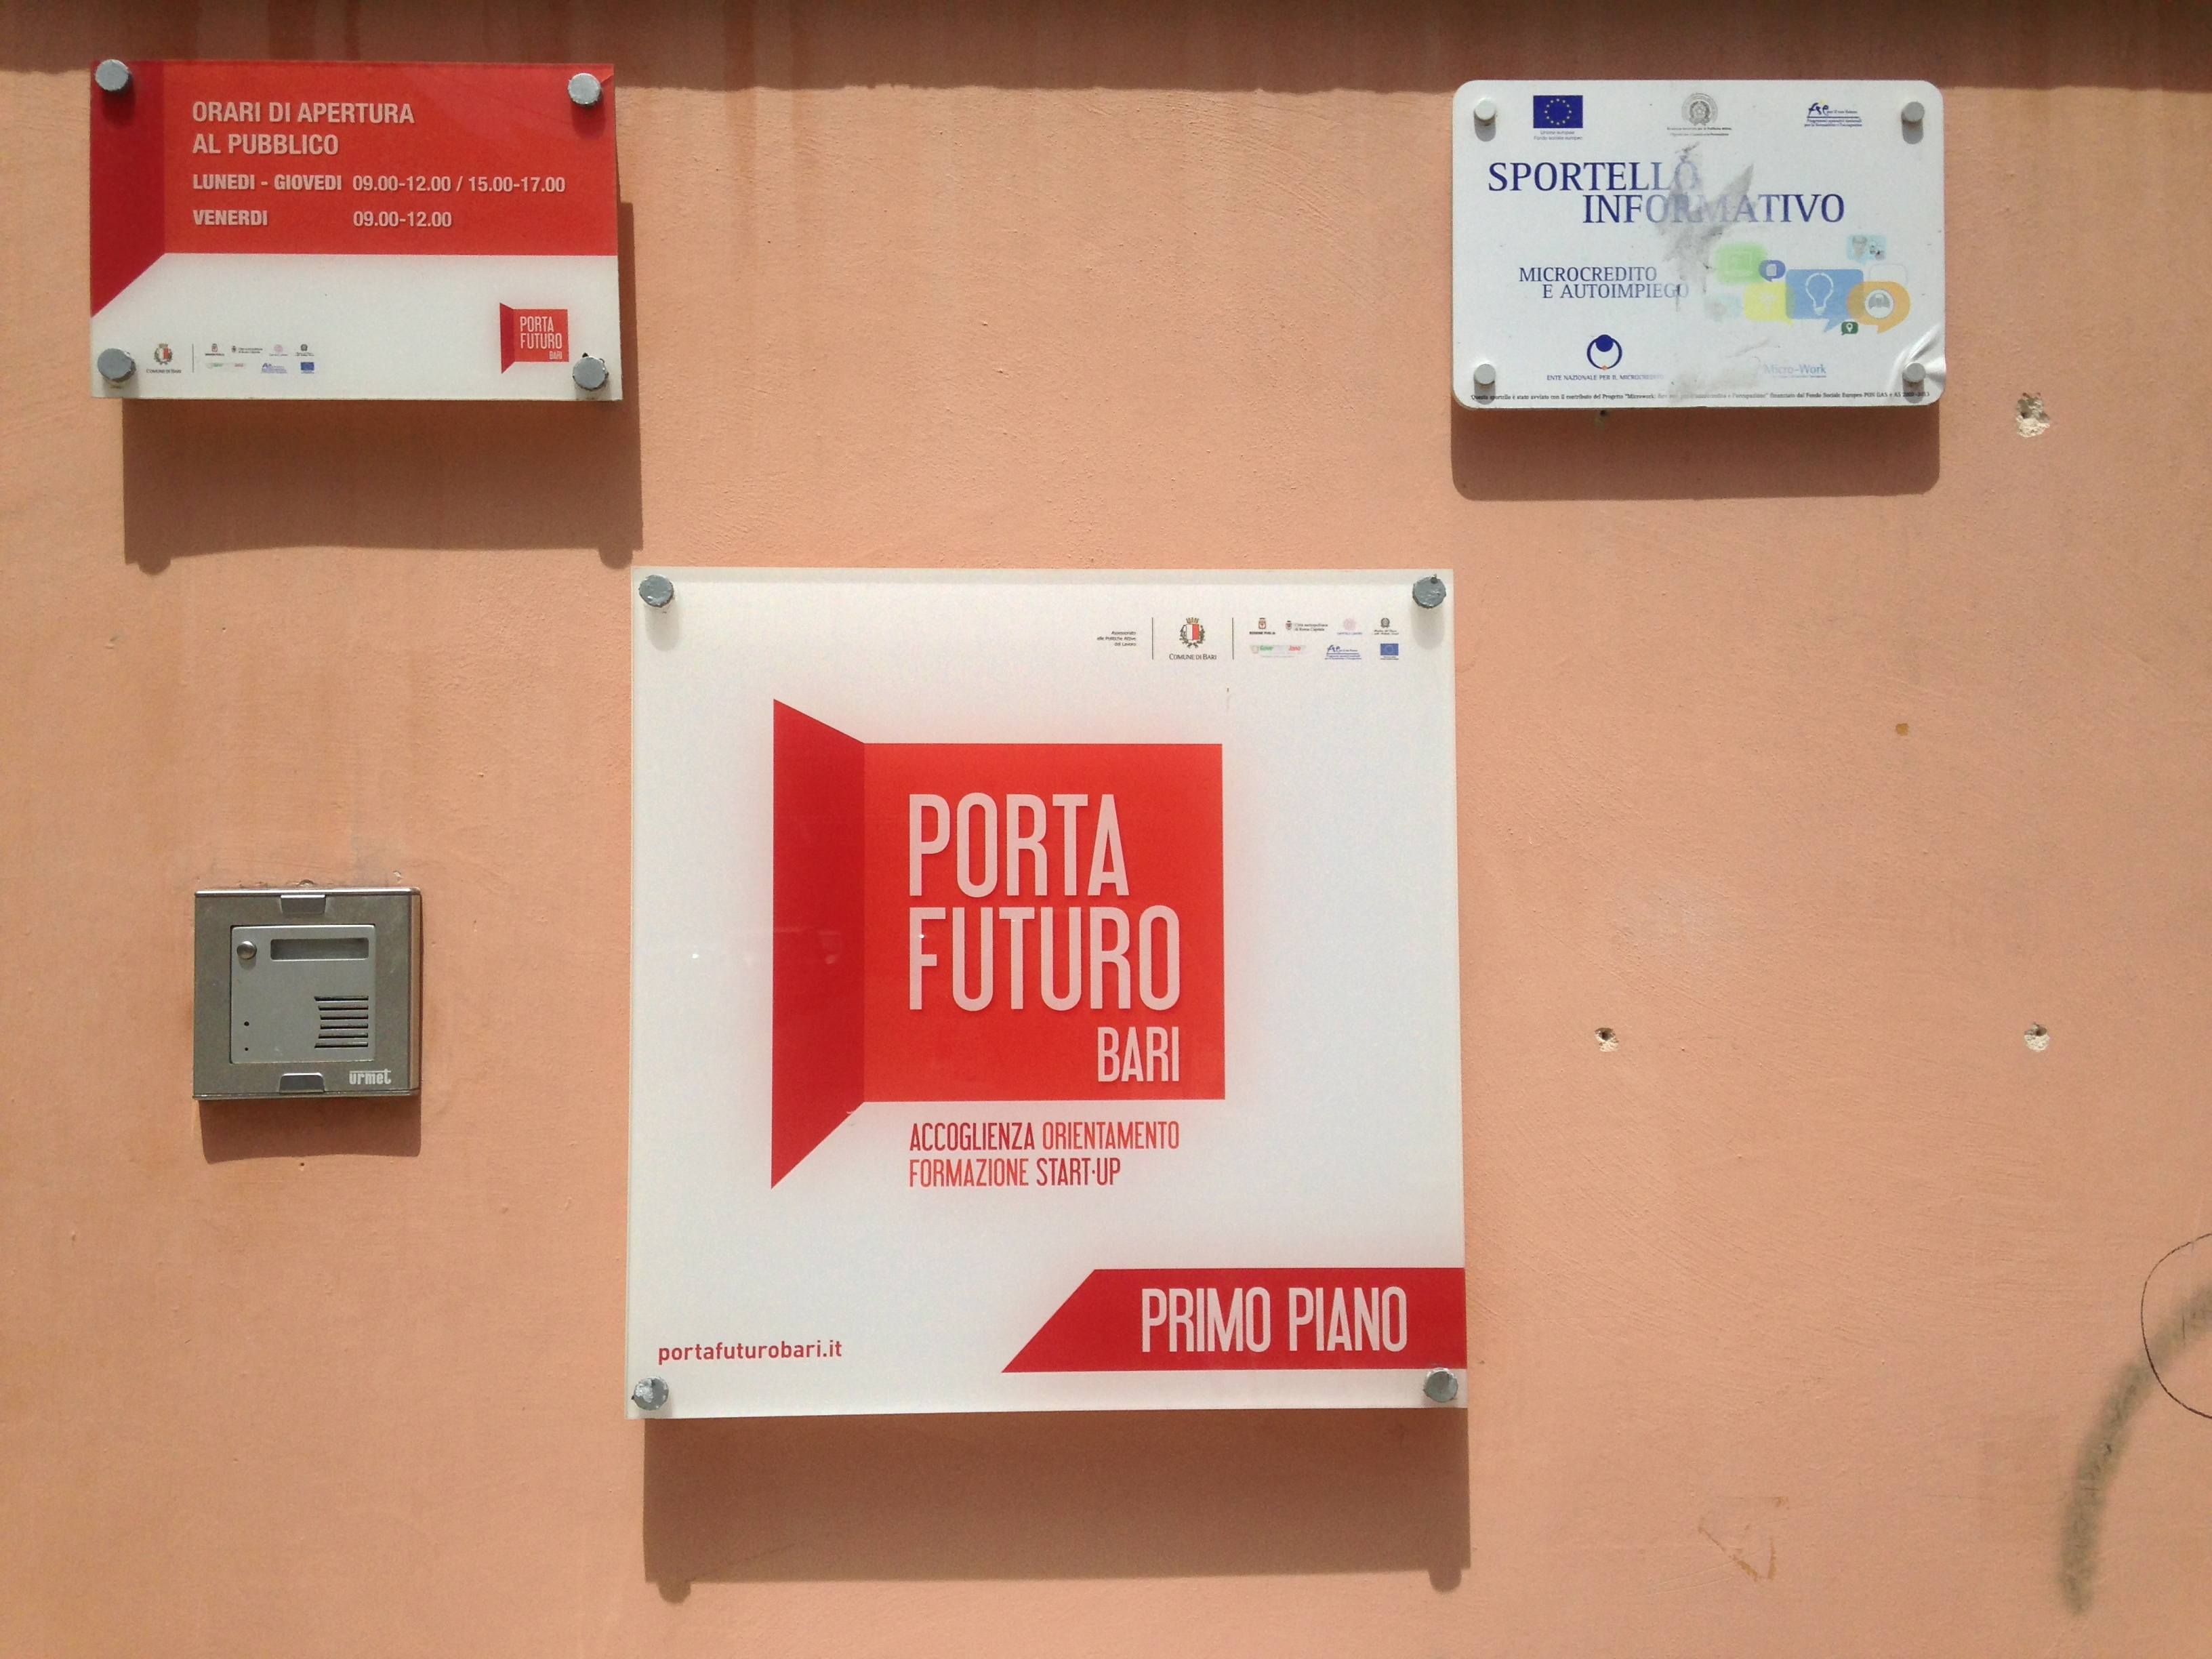 Porta Futuro employment centre in Bari, Italy. Source (cc) Eutropian